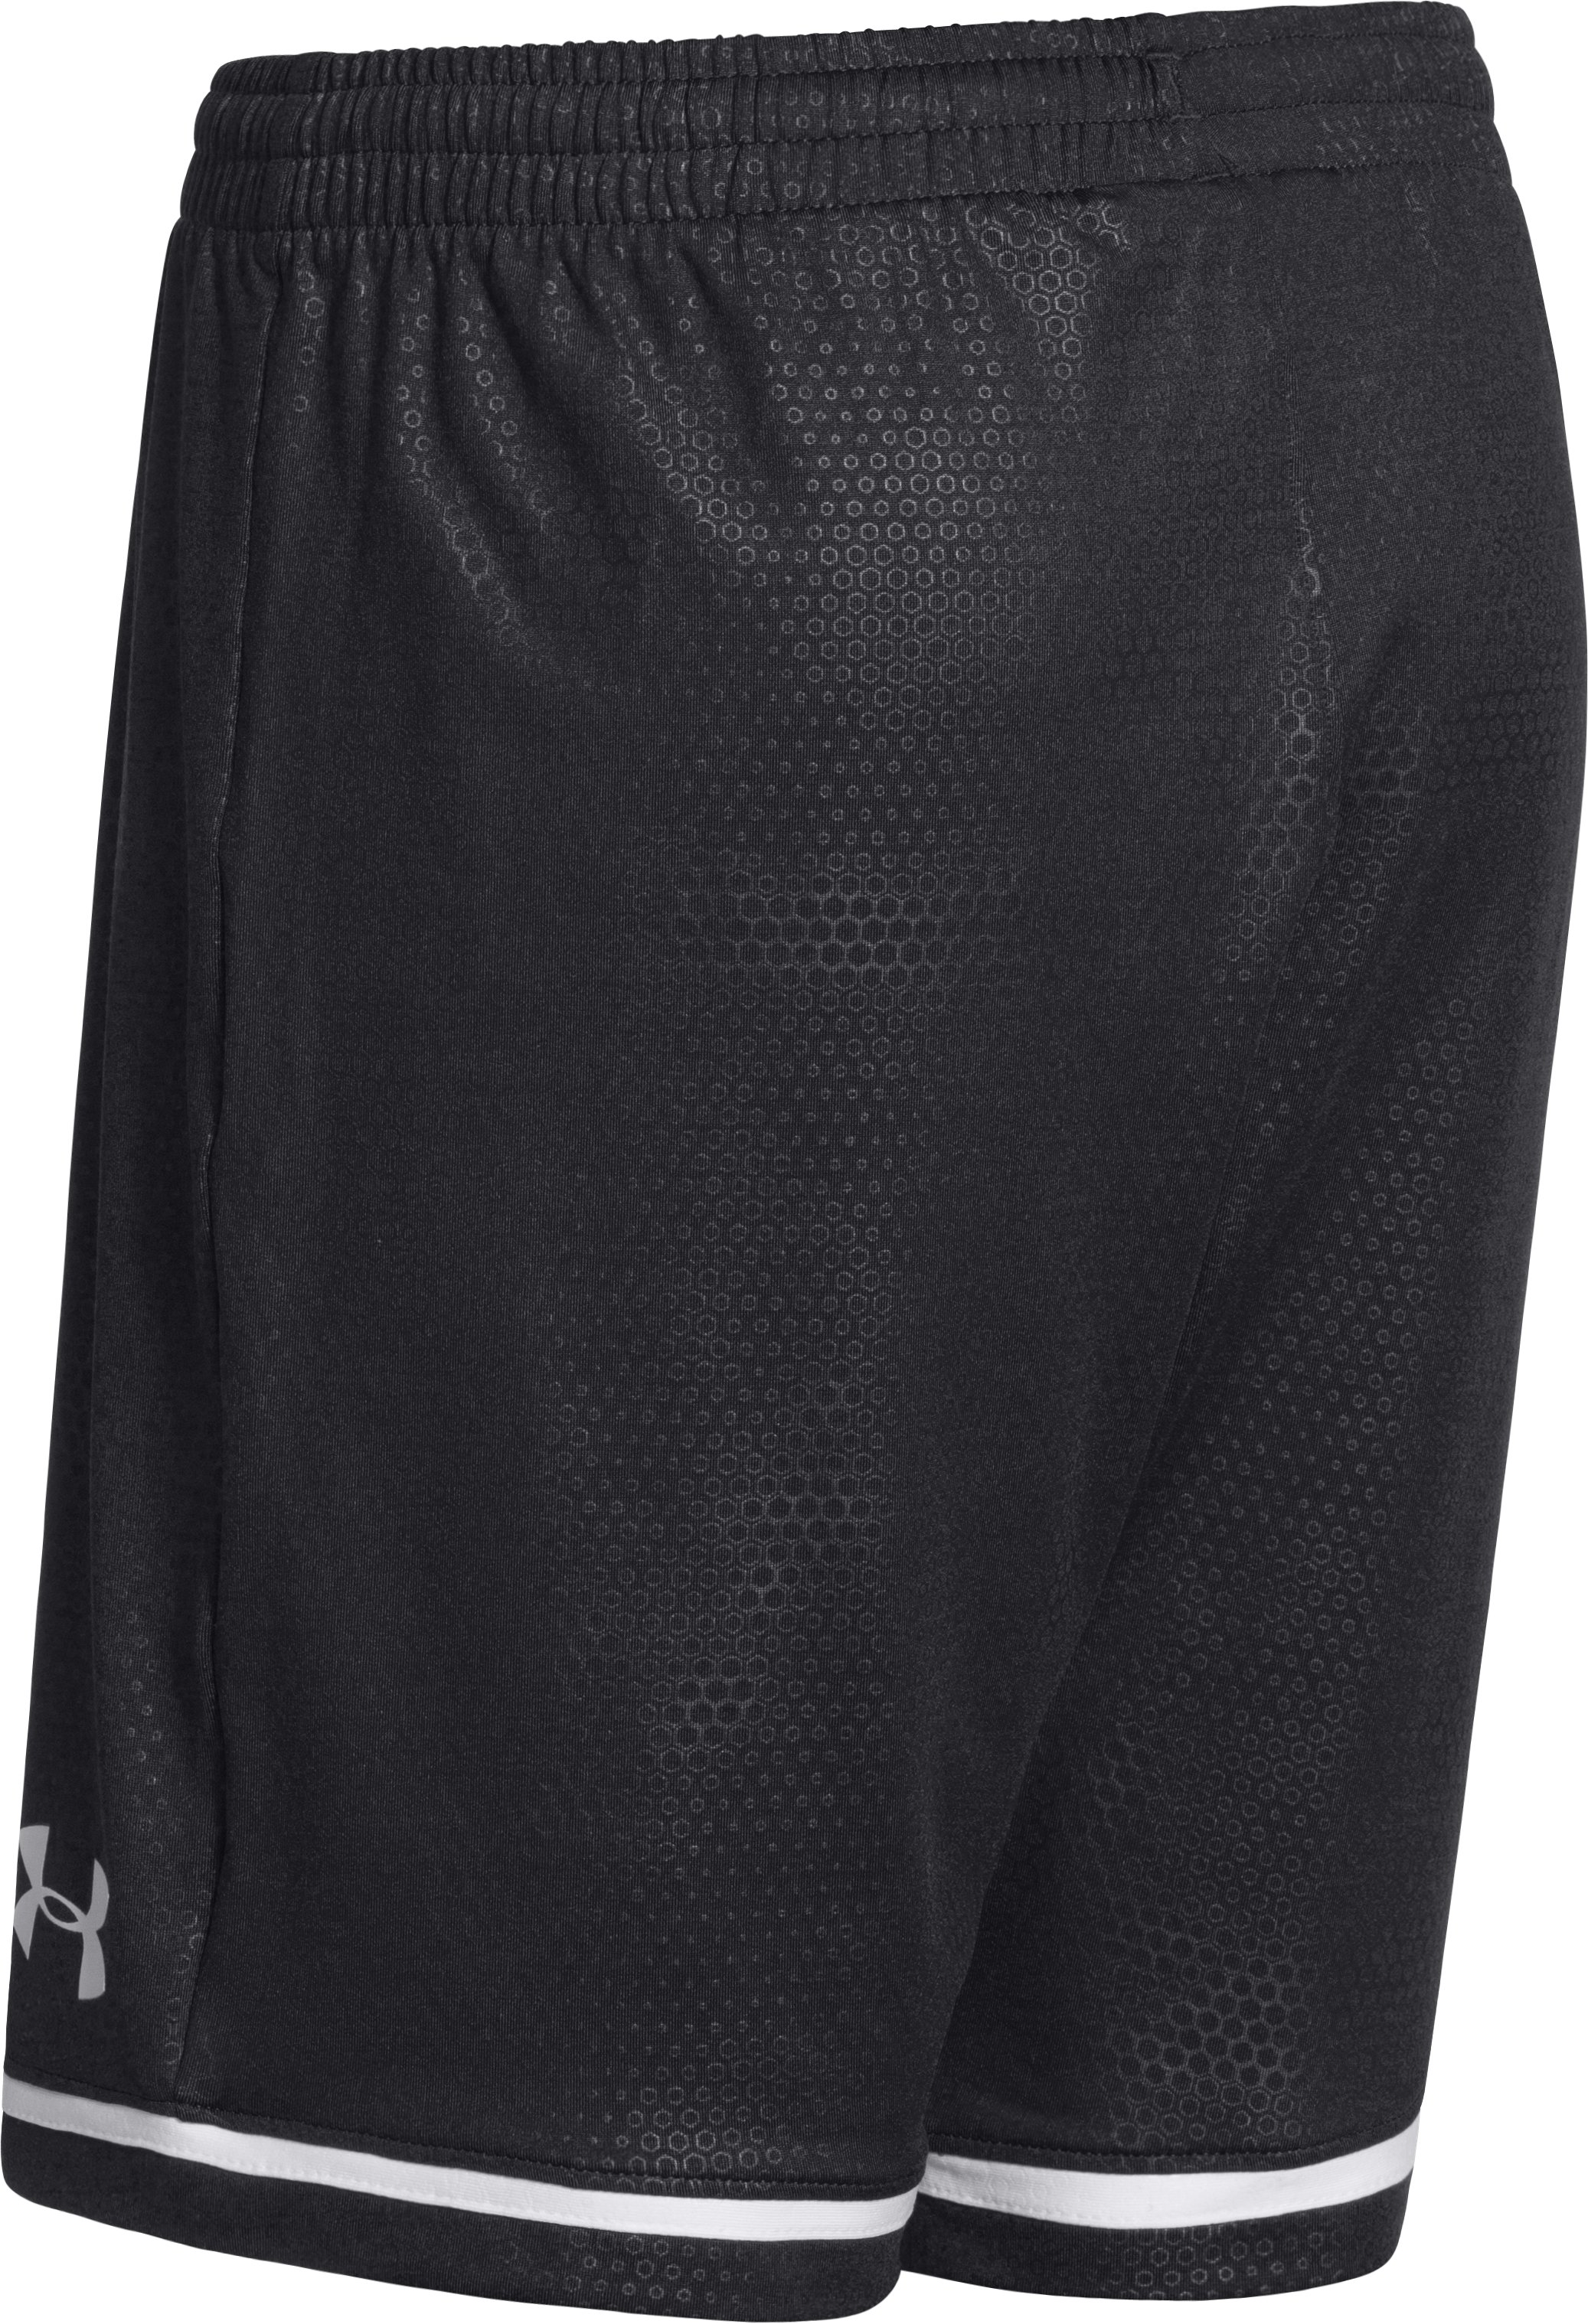 Boys' UA Highlight Soccer Shorts, Black ,